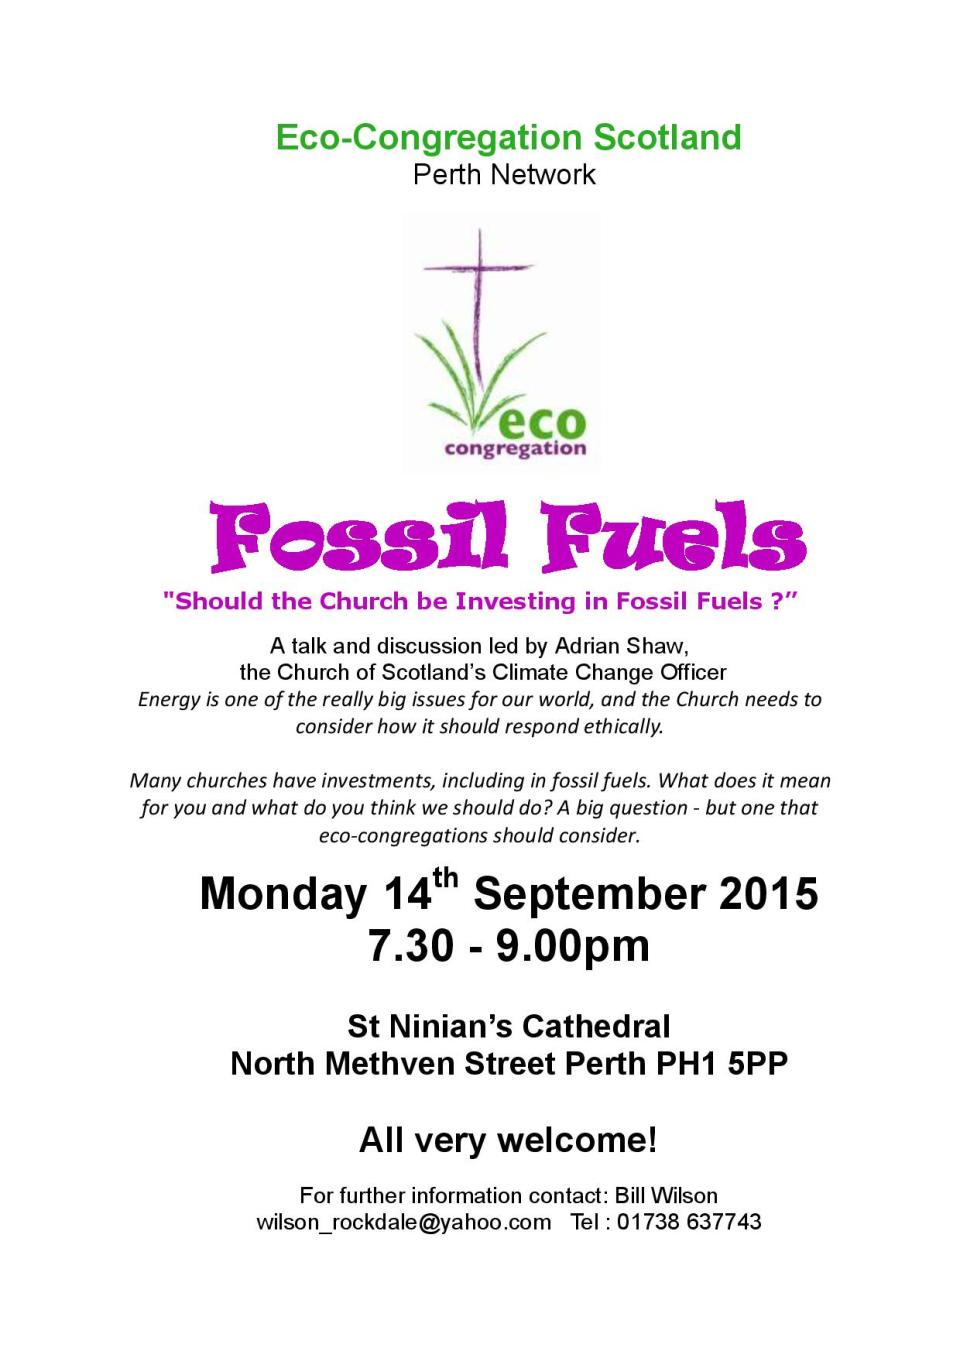 013a Fossil Fuels Debate poster 14.9.15-page-001 (1)